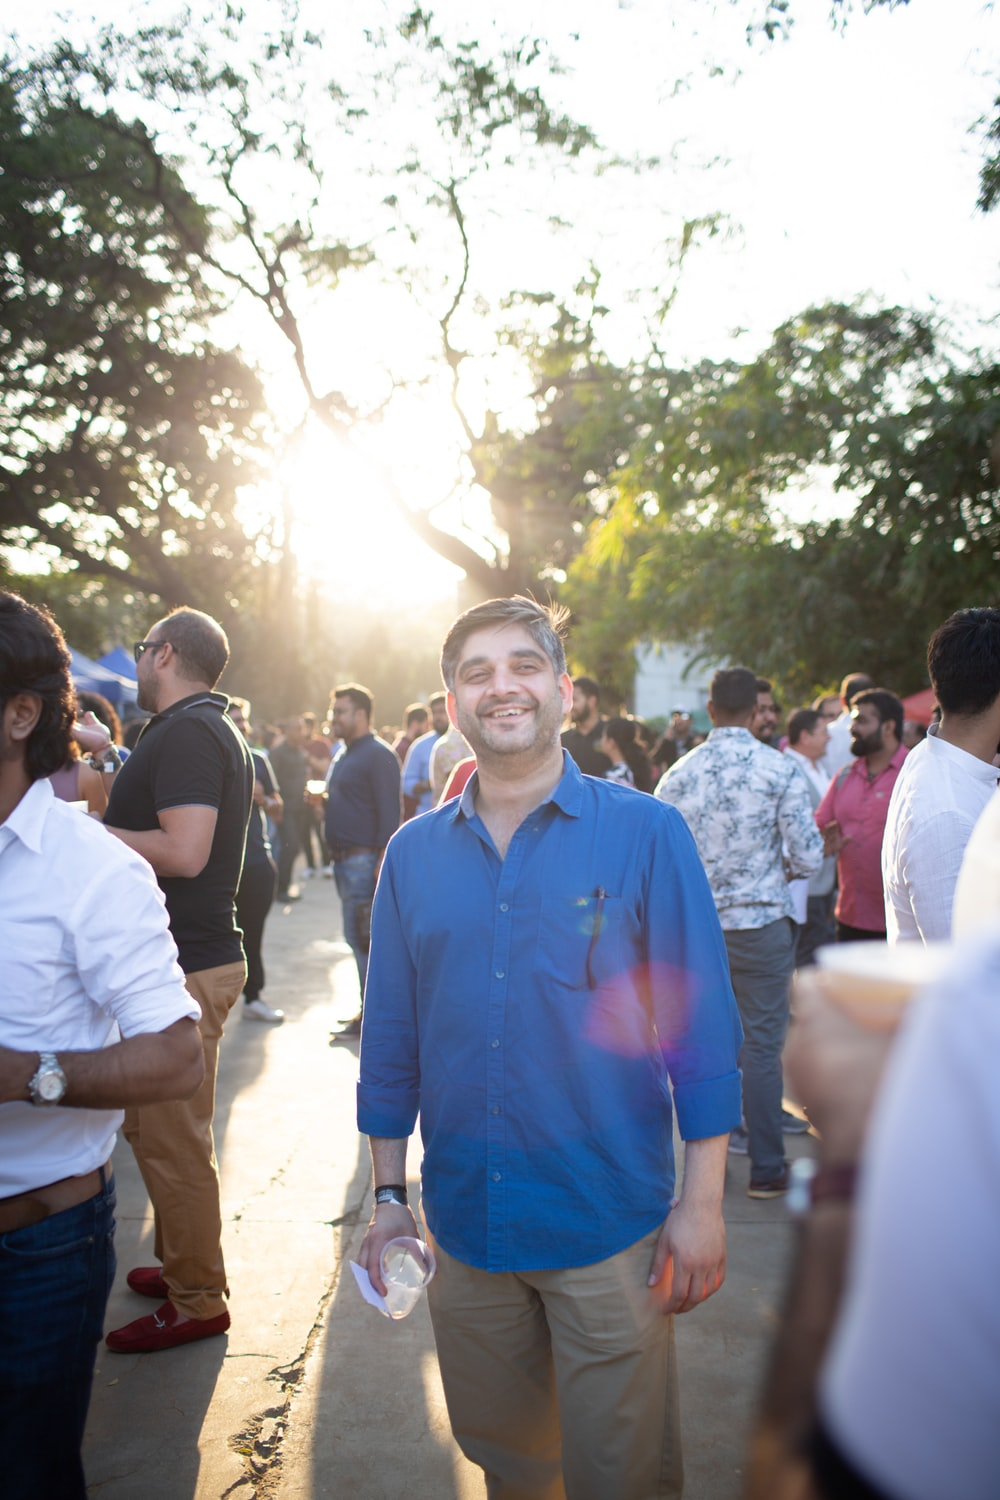 man in blue polo shirt standing near people during daytime